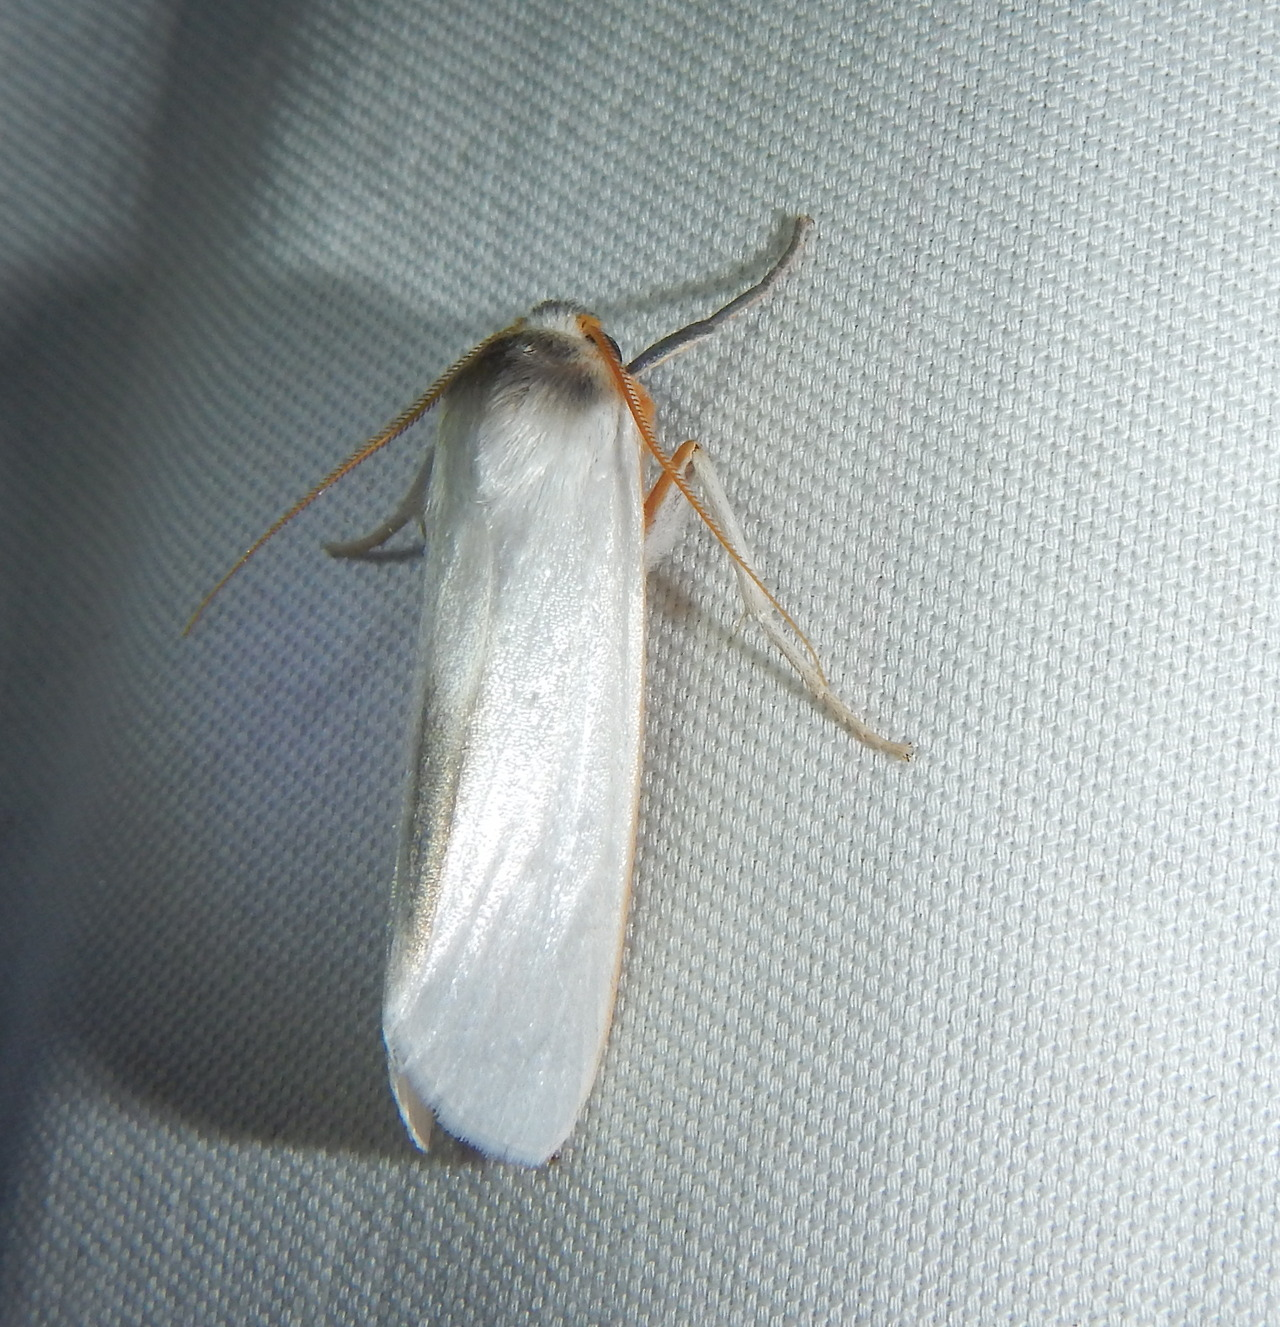 buggirl :     Subtle moth beauty of the day.   Tiputini, Ecuador     give a dollar to research in The Amazon